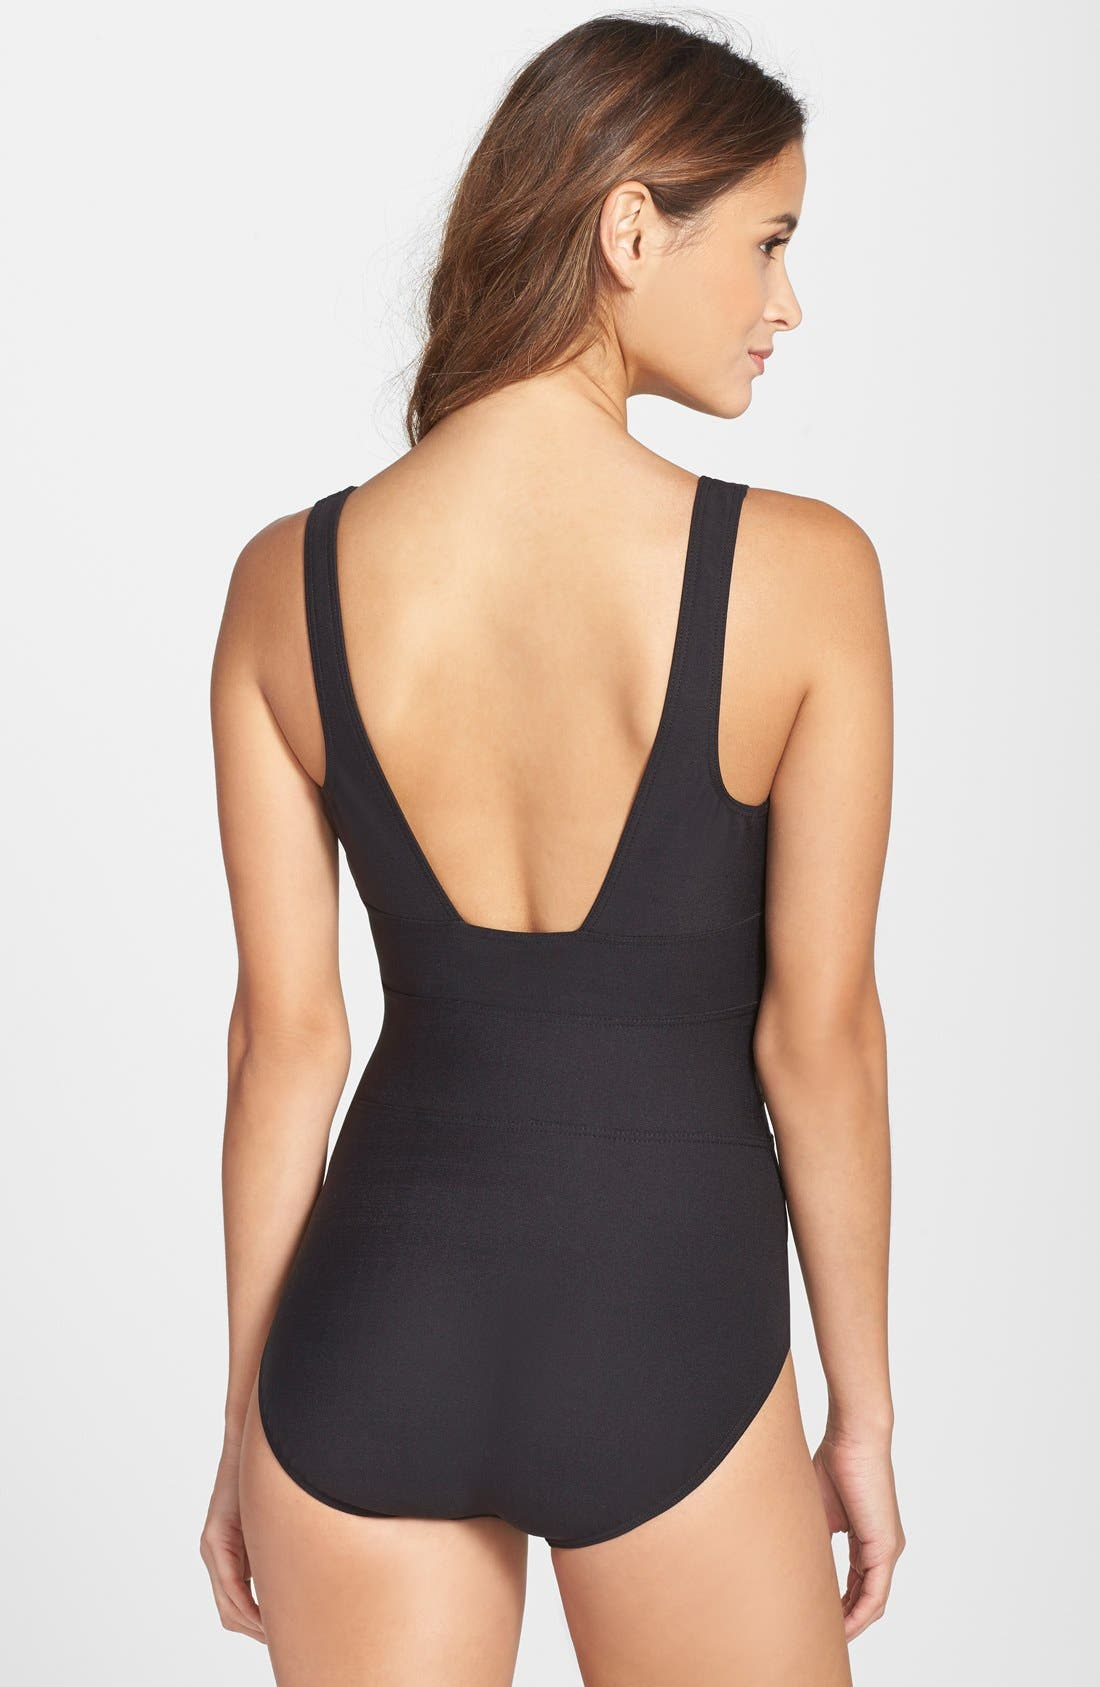 'Spectra' Banded Maillot,                             Alternate thumbnail 8, color,                             BLACK TONES